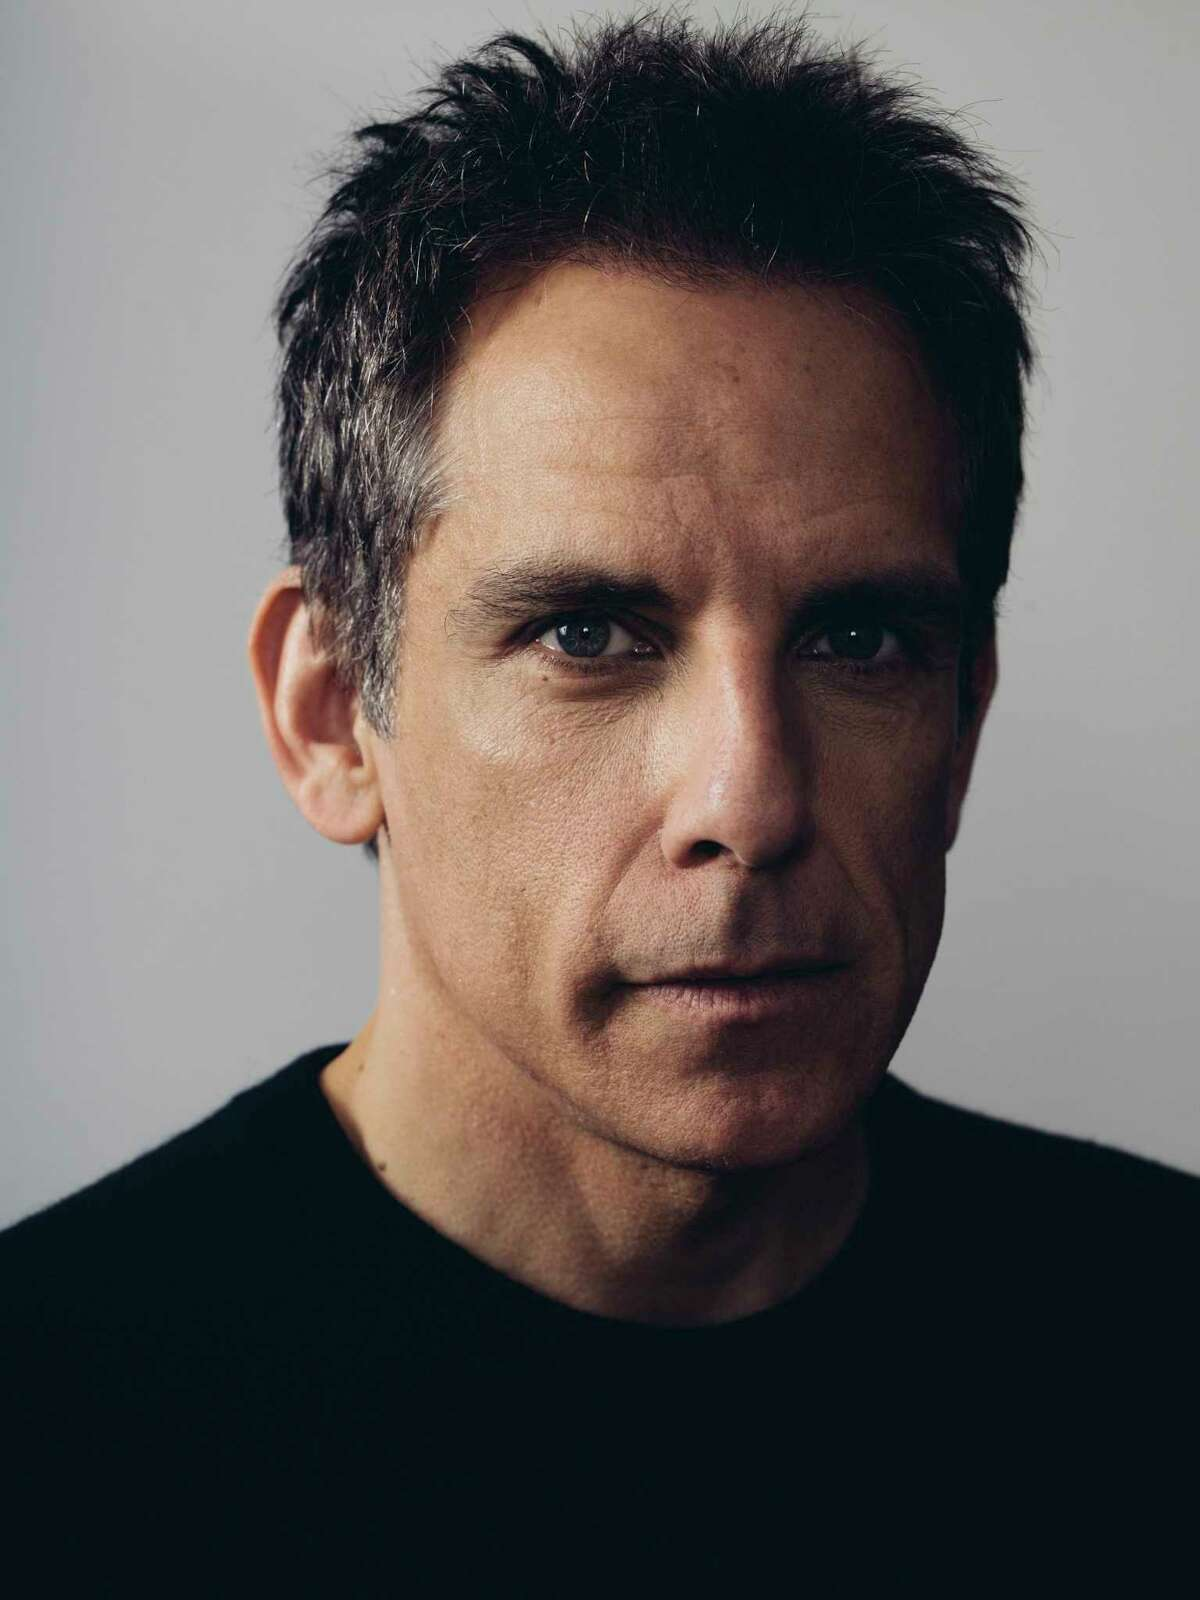 Ben Stiller was diagnosed with prostate cancer in 2014. (Geordie Wood/The New York Times)